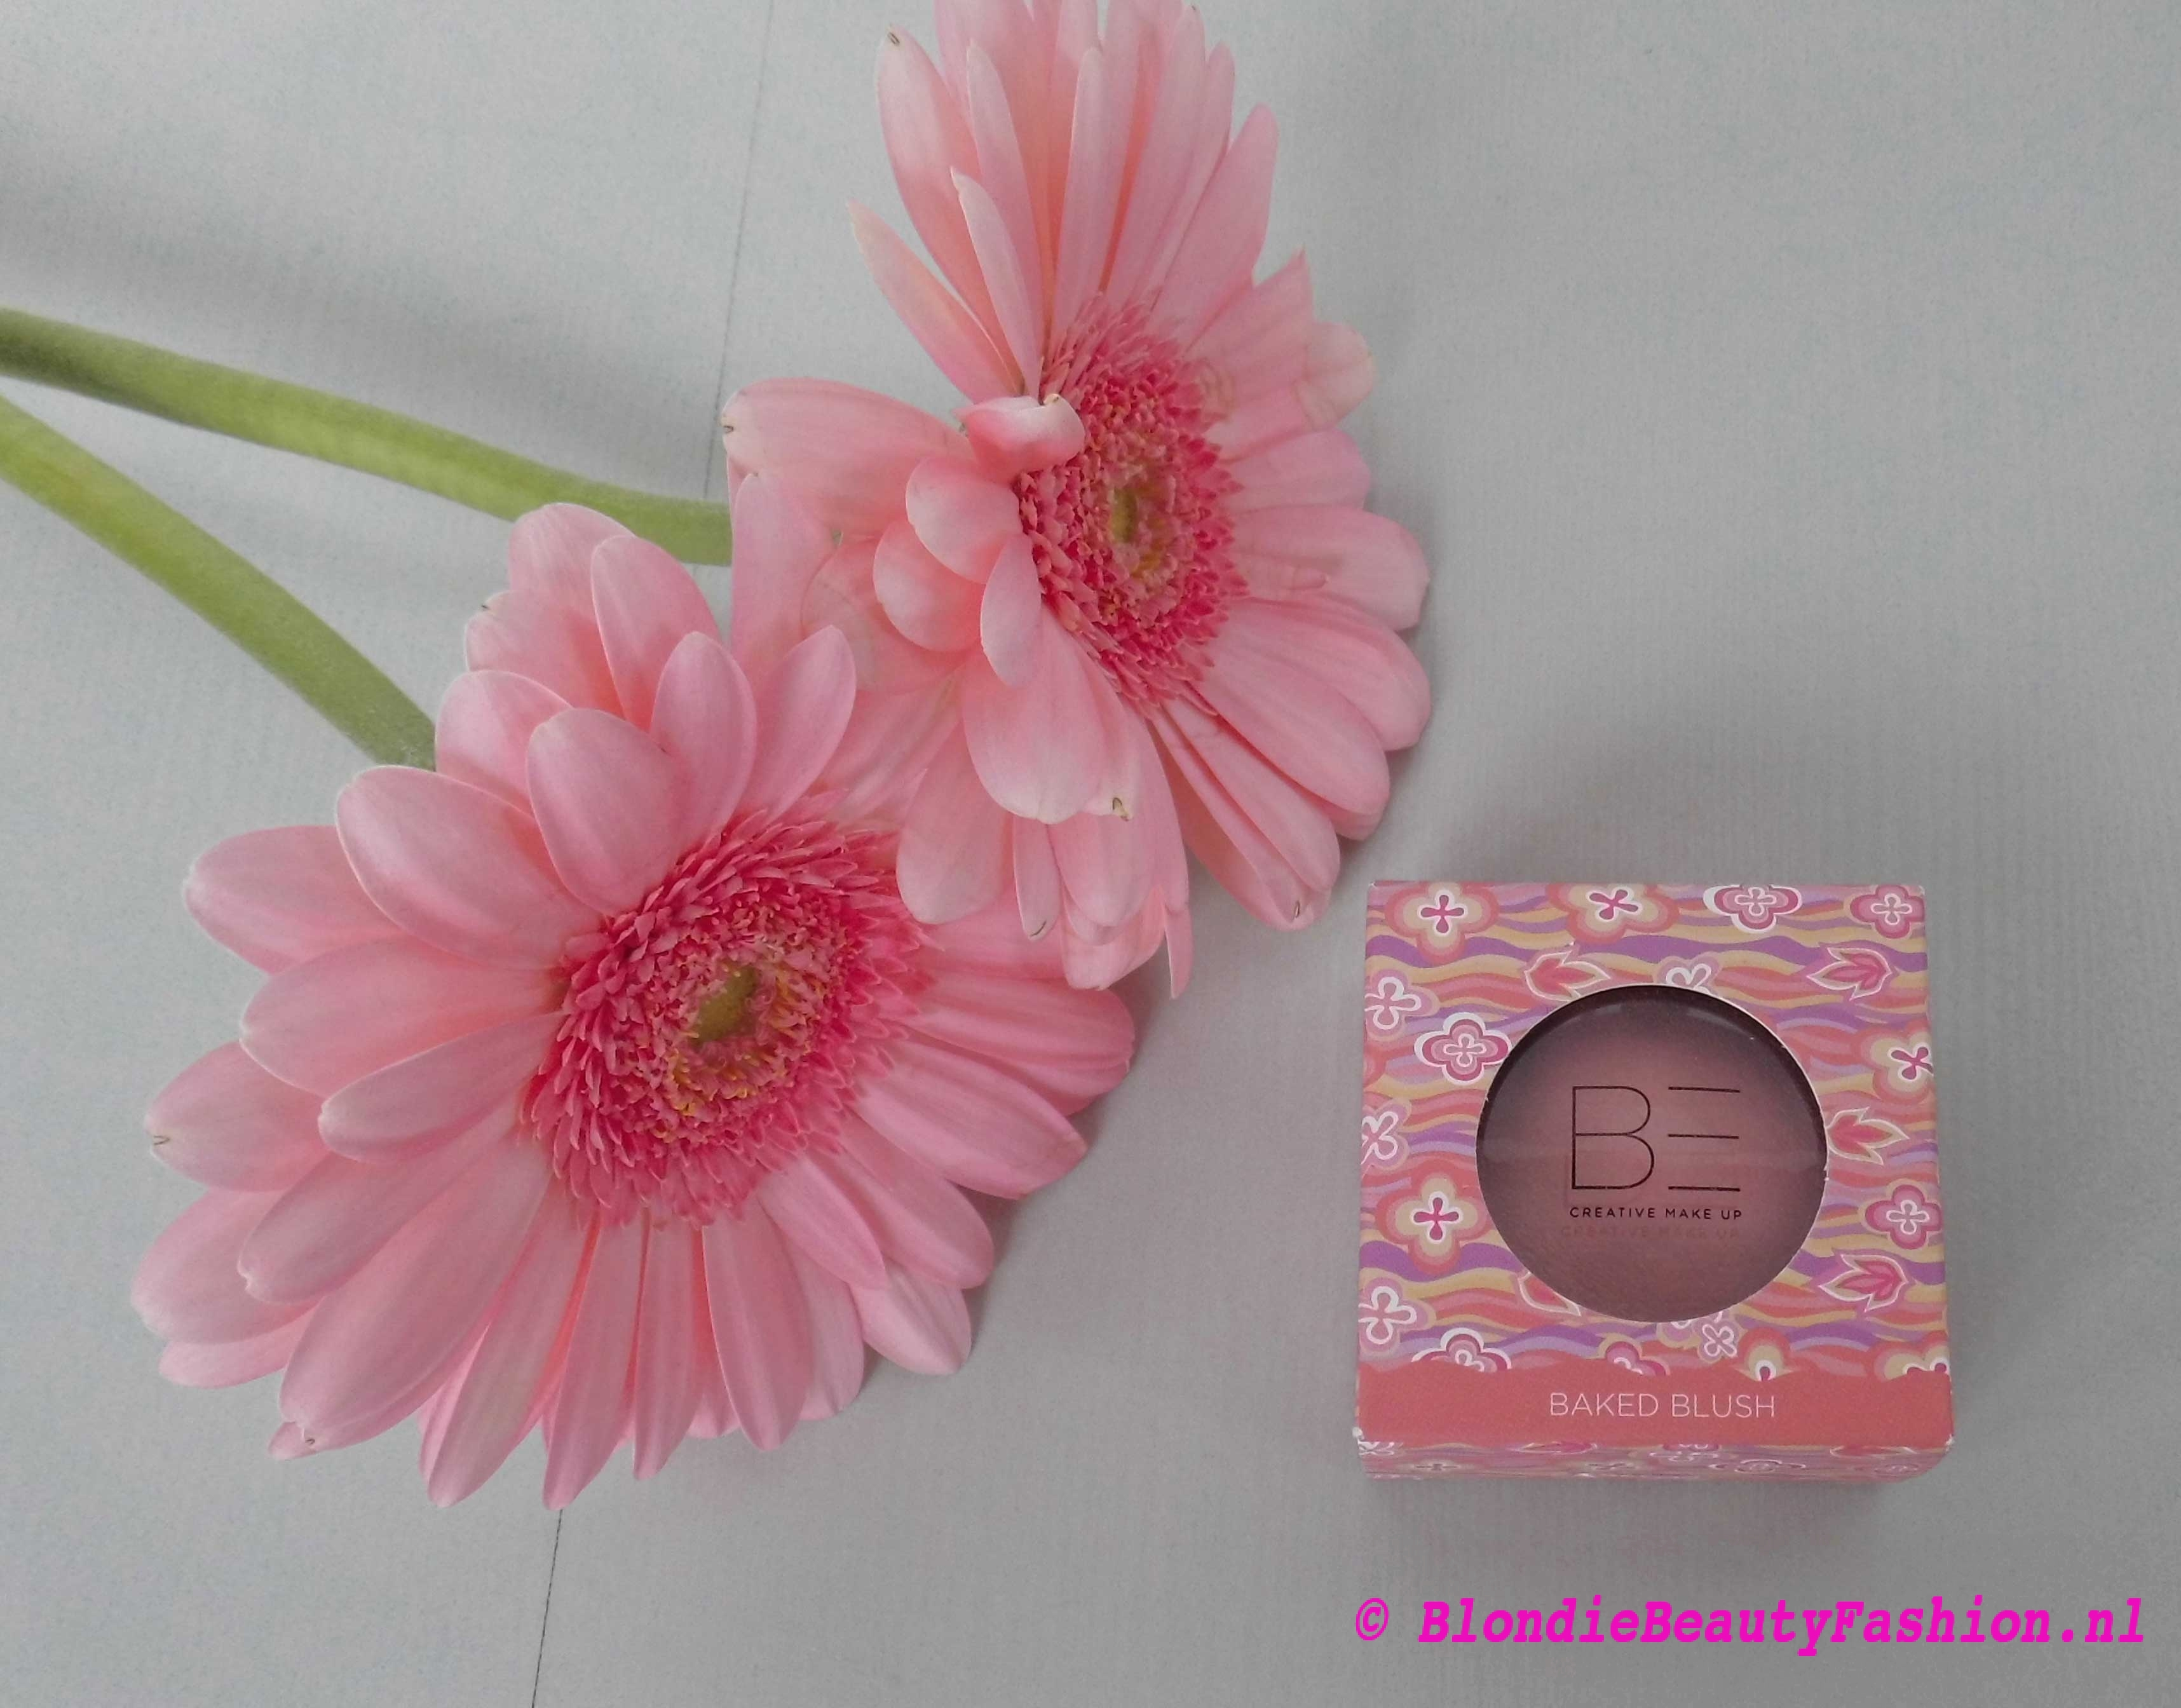 Review-BE-Creative-makeup-baked-blush--in-001-romance-ici-paris-xl-1